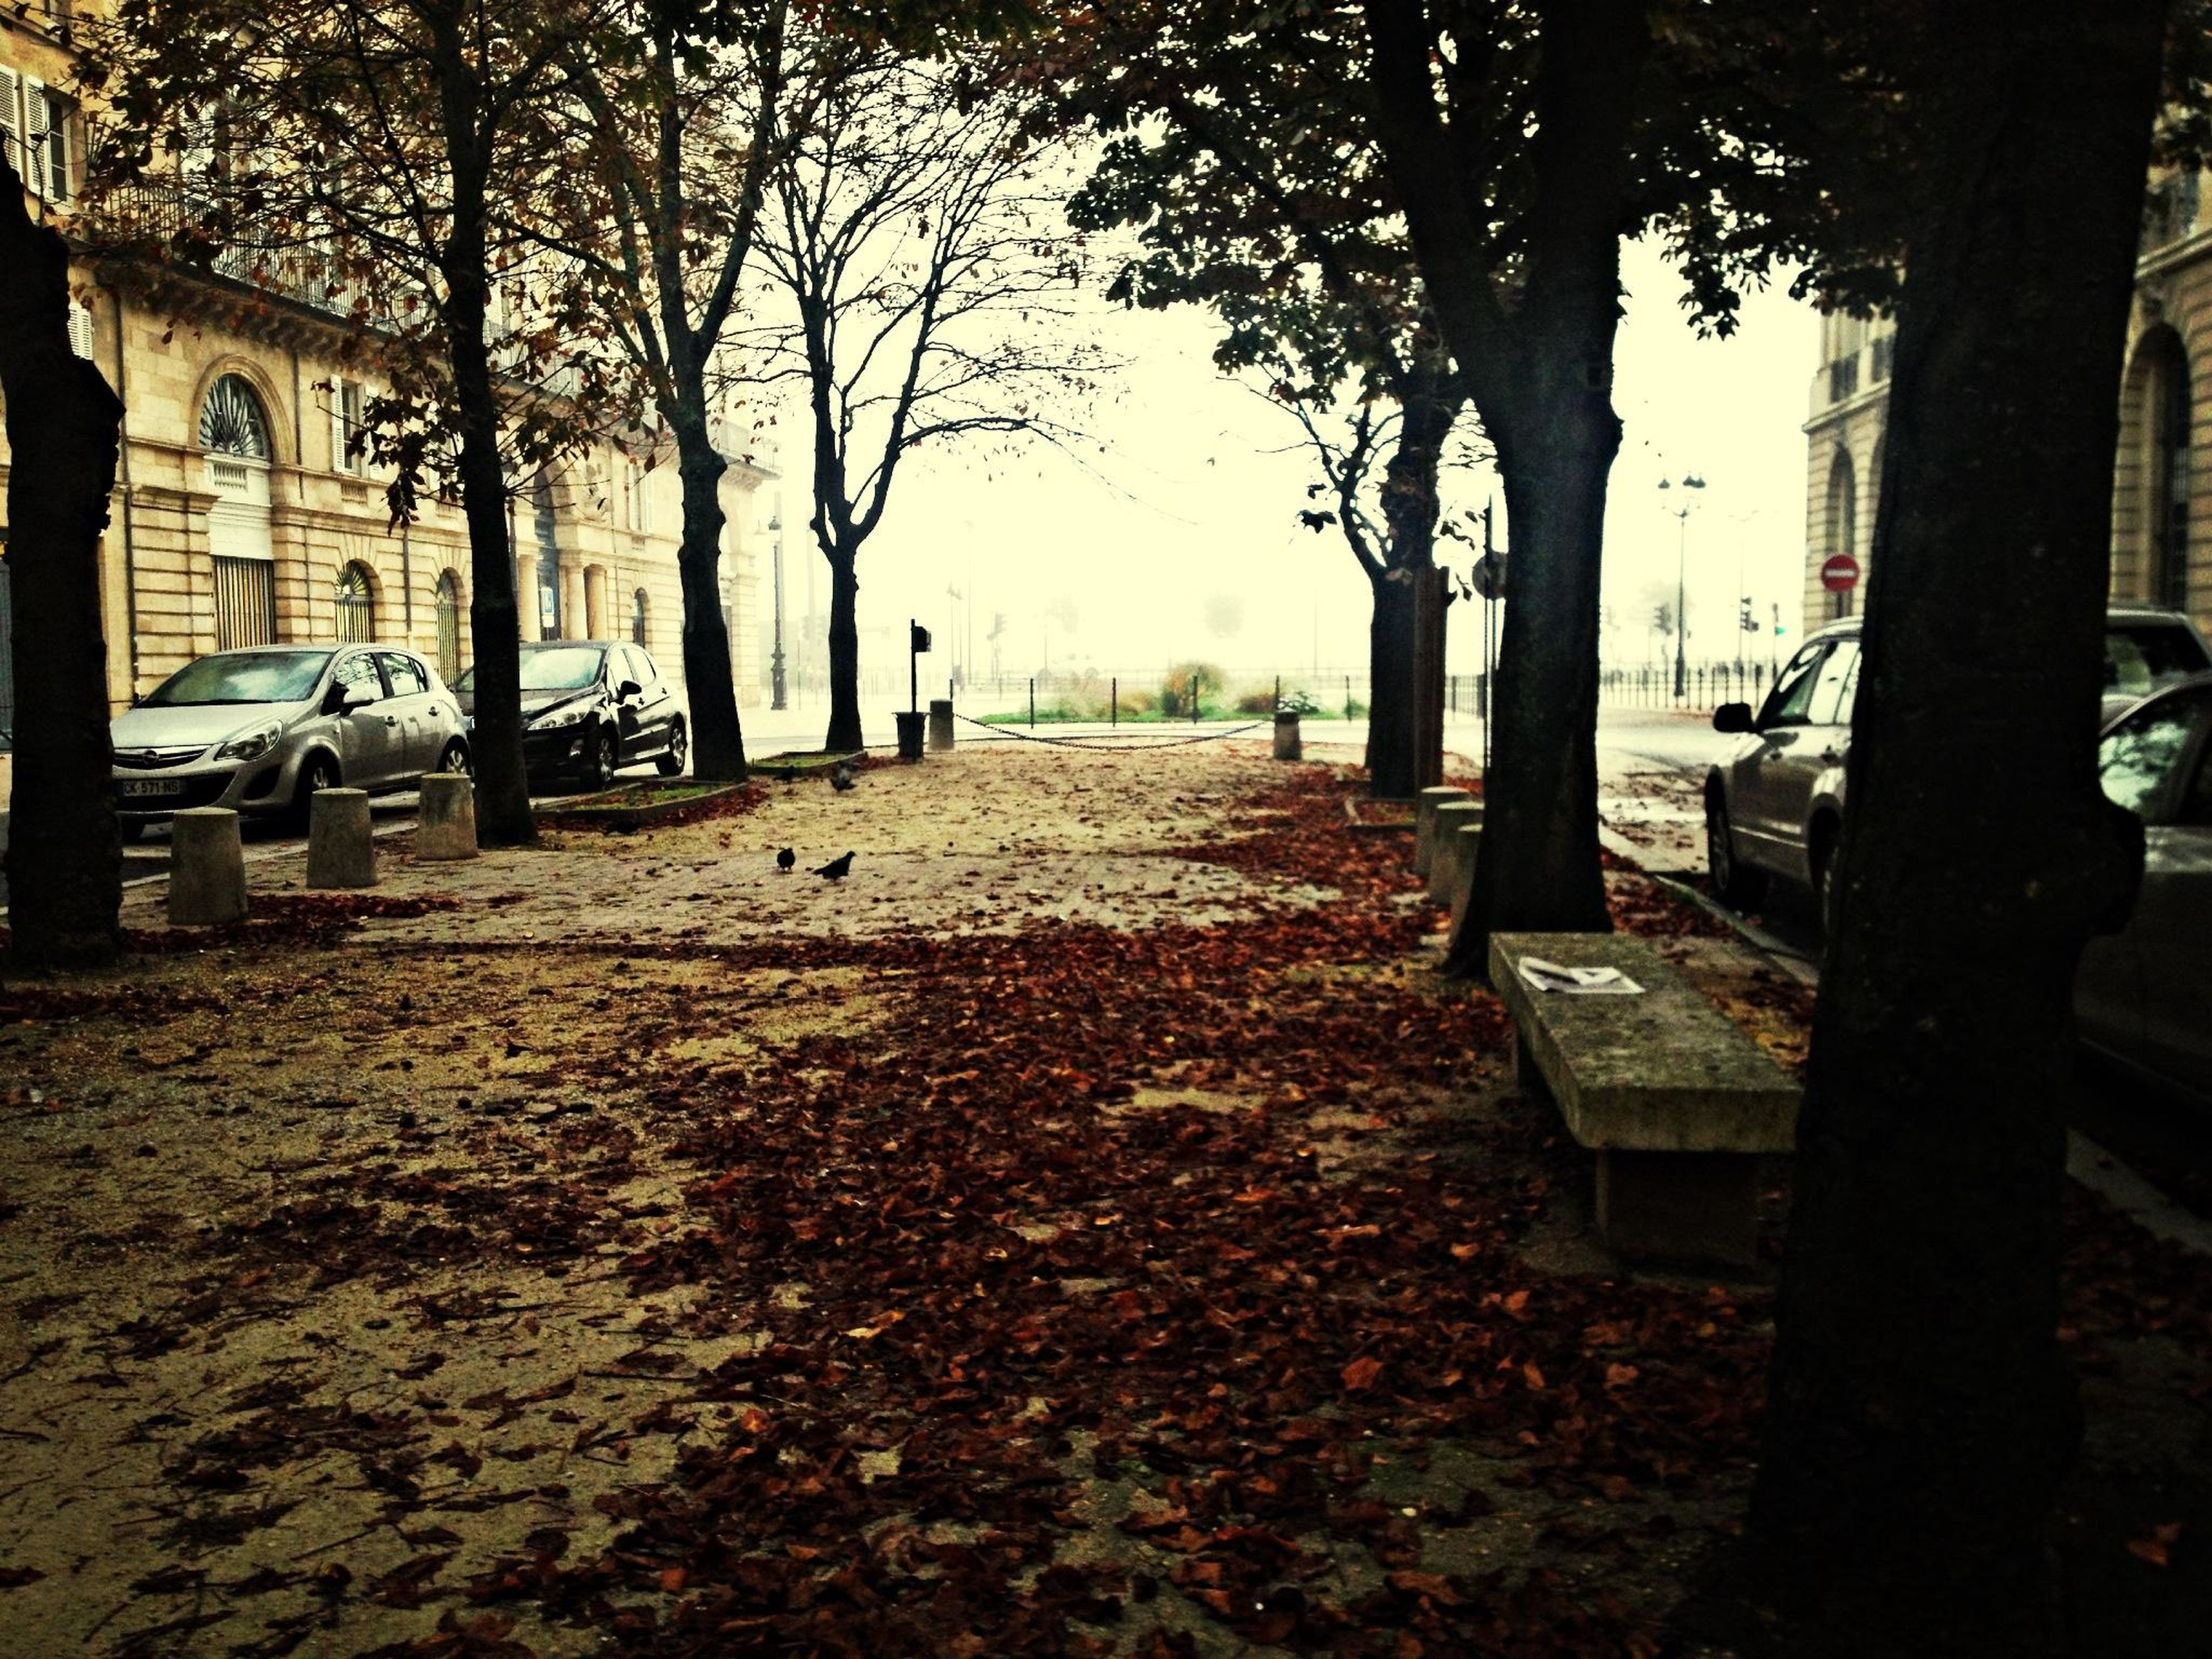 tree, the way forward, tree trunk, street, treelined, building exterior, built structure, architecture, city, autumn, road, footpath, diminishing perspective, transportation, season, empty, incidental people, street light, sidewalk, park - man made space